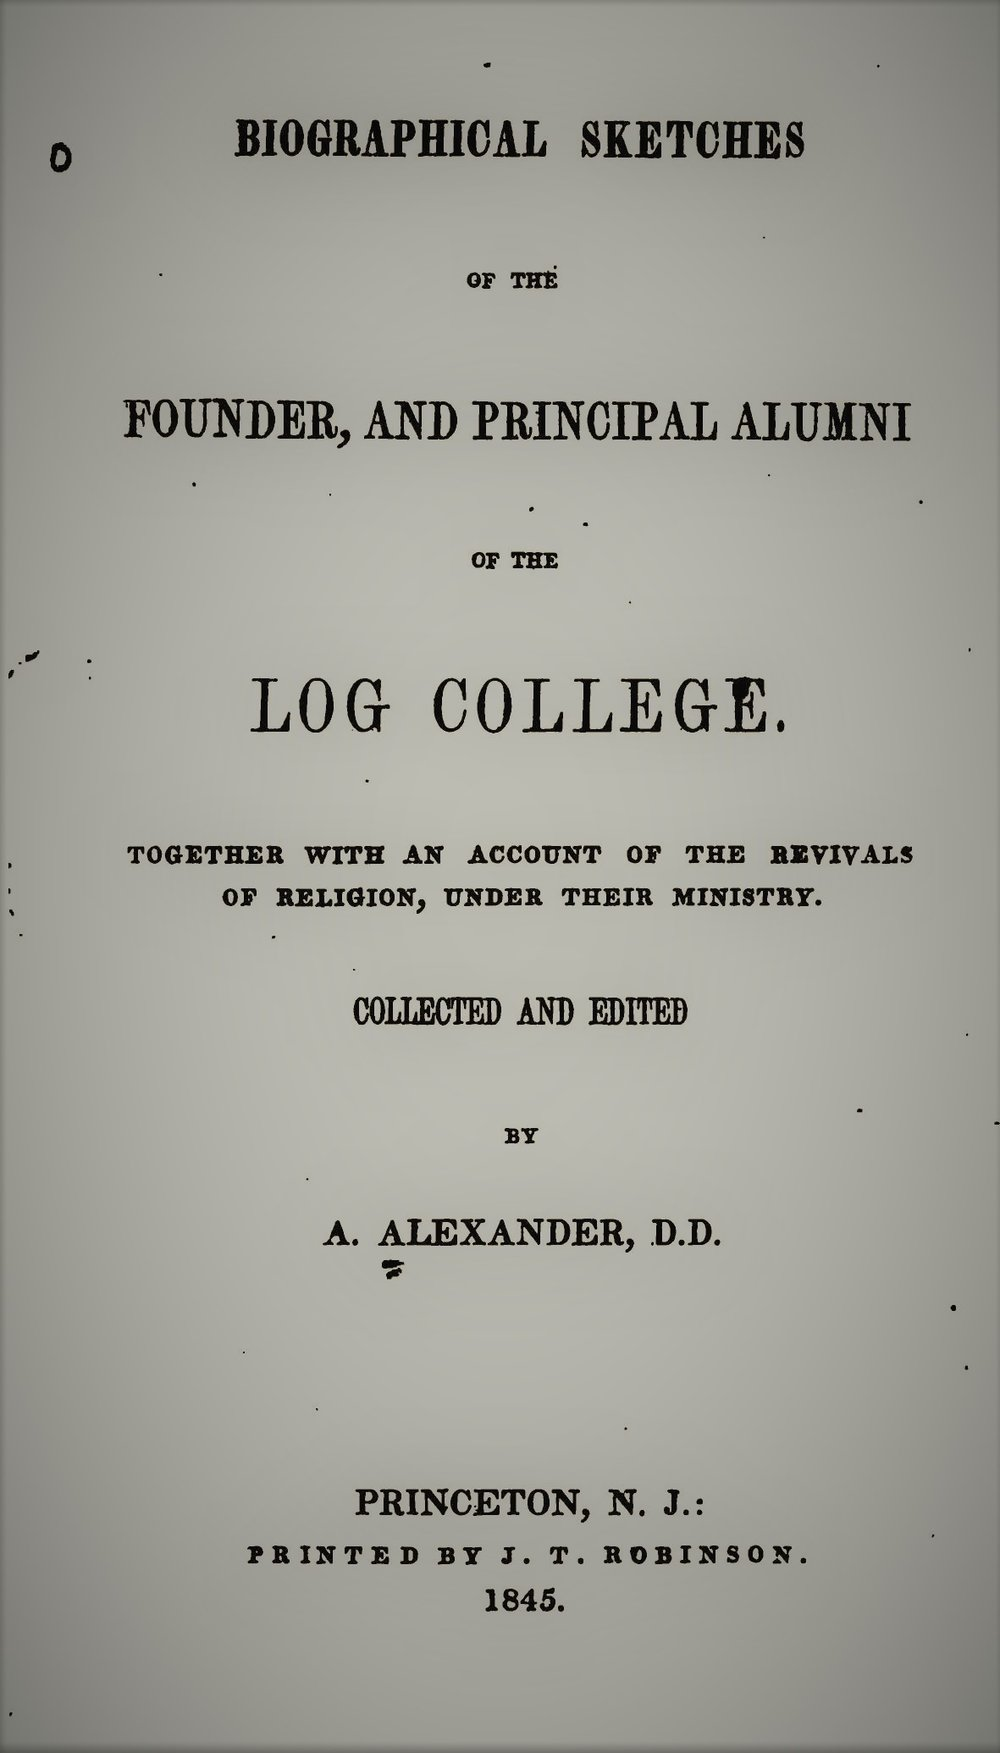 Alexander, Sketches of Log College.jpg